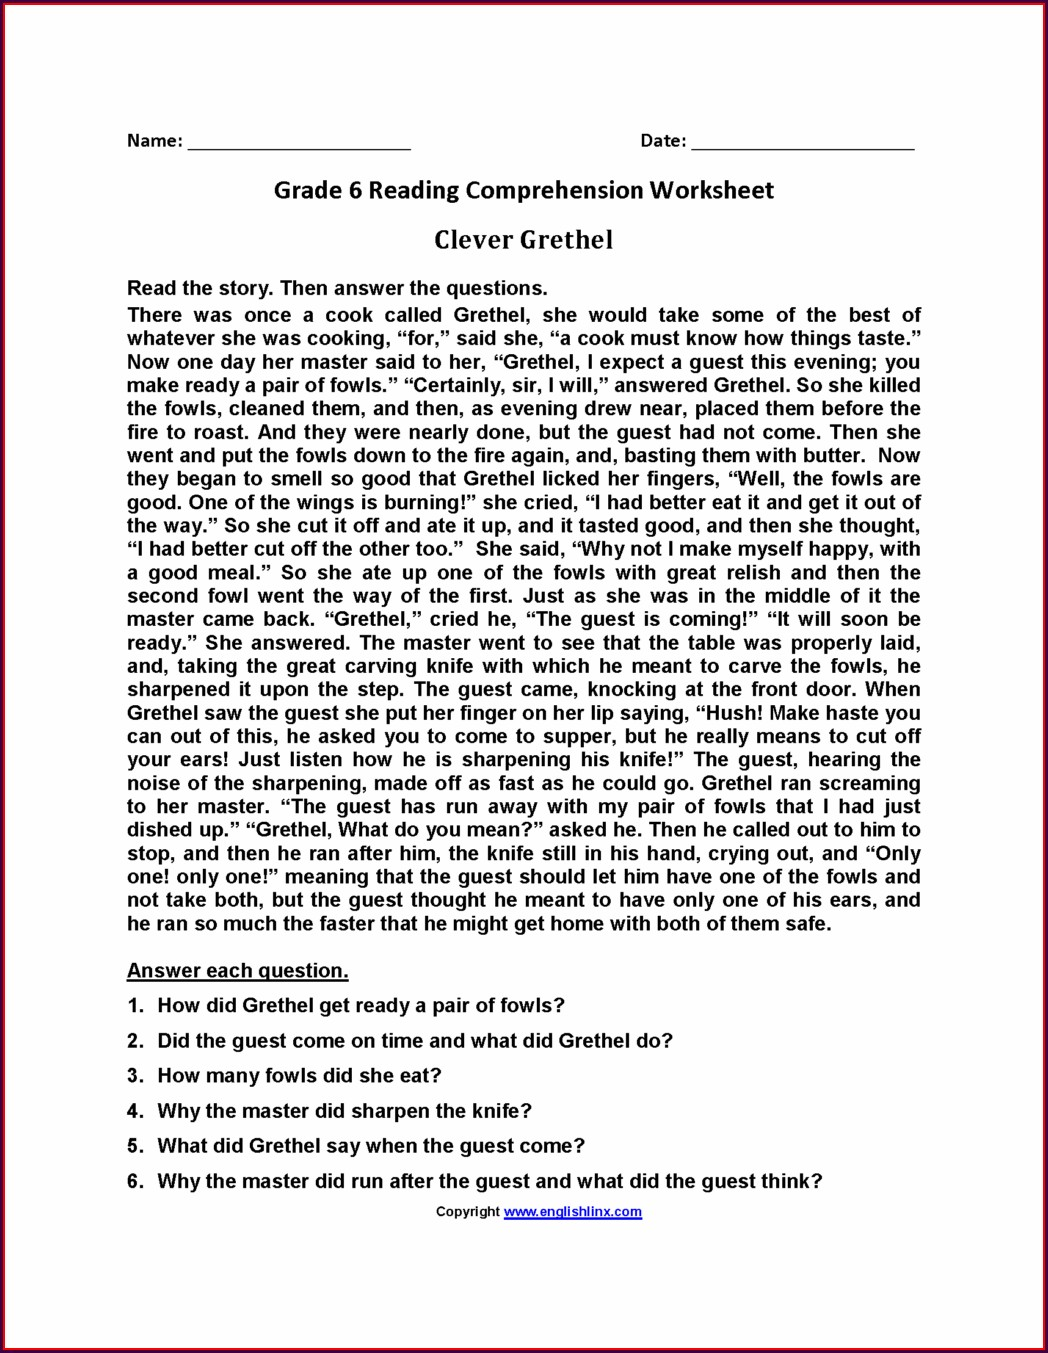 Free Printable Reading Worksheet 3rd Grade